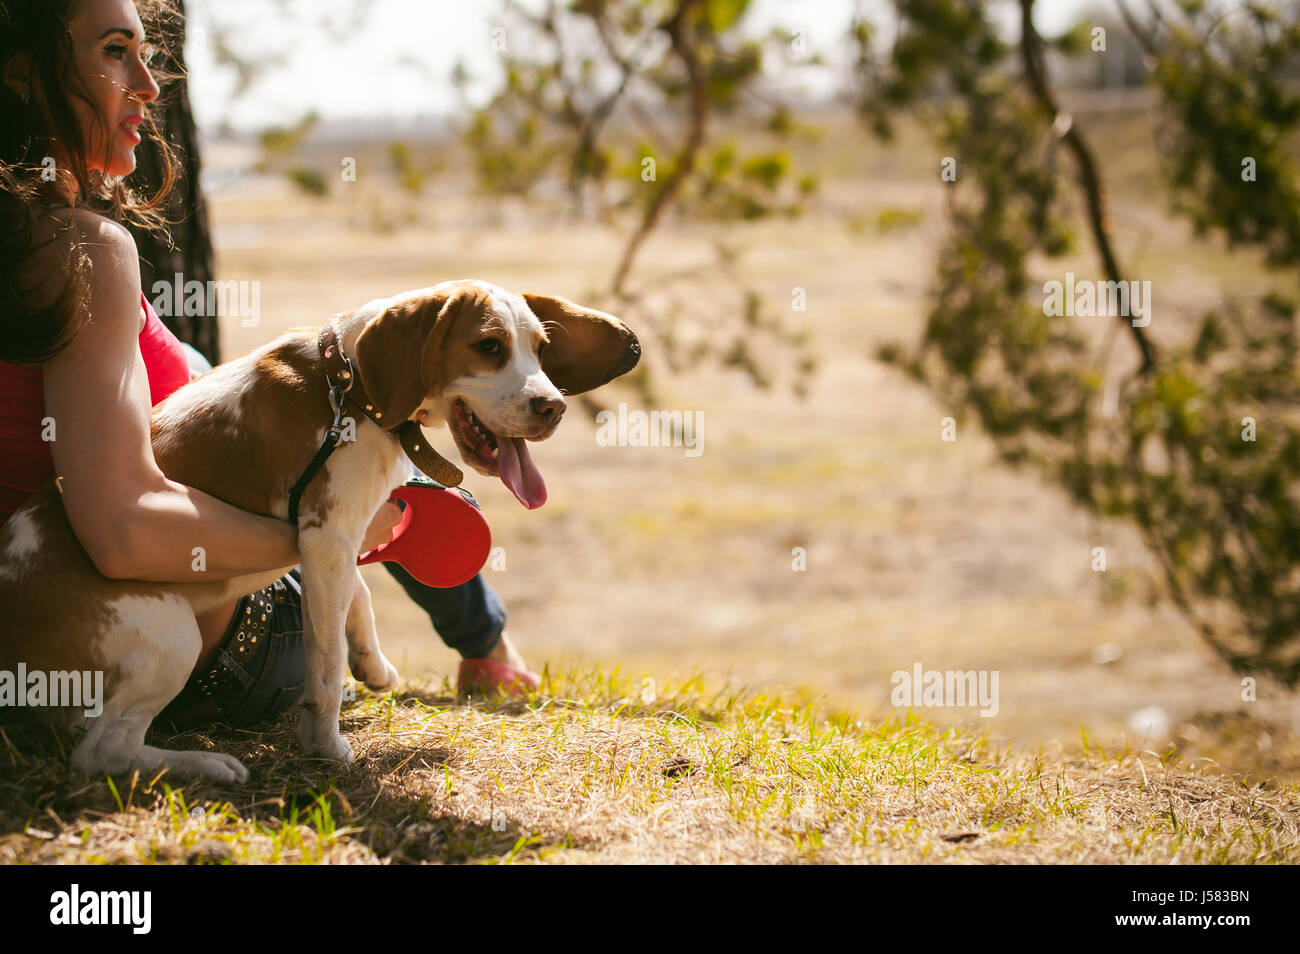 Young pet dog breeds beagle walking in park outdoors. woman carefully walks puppy, plays and tranitsiruetsya, sits - Stock Image